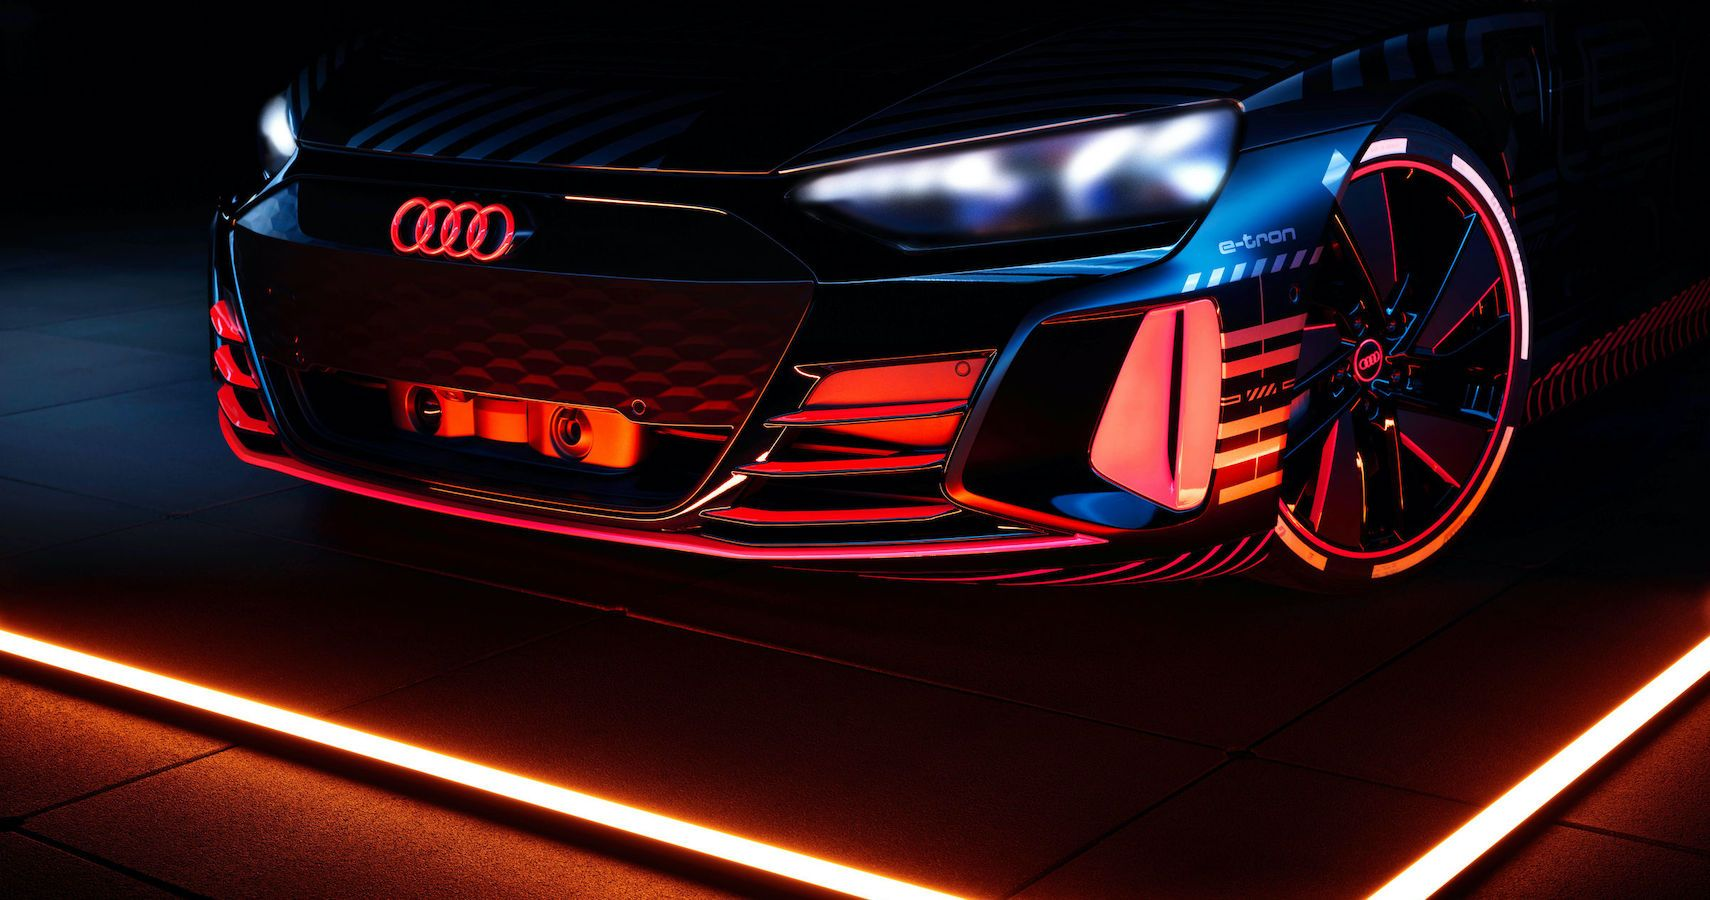 Real Version Of Iron Man's Audi E-Tron GT Set For Production In Germany